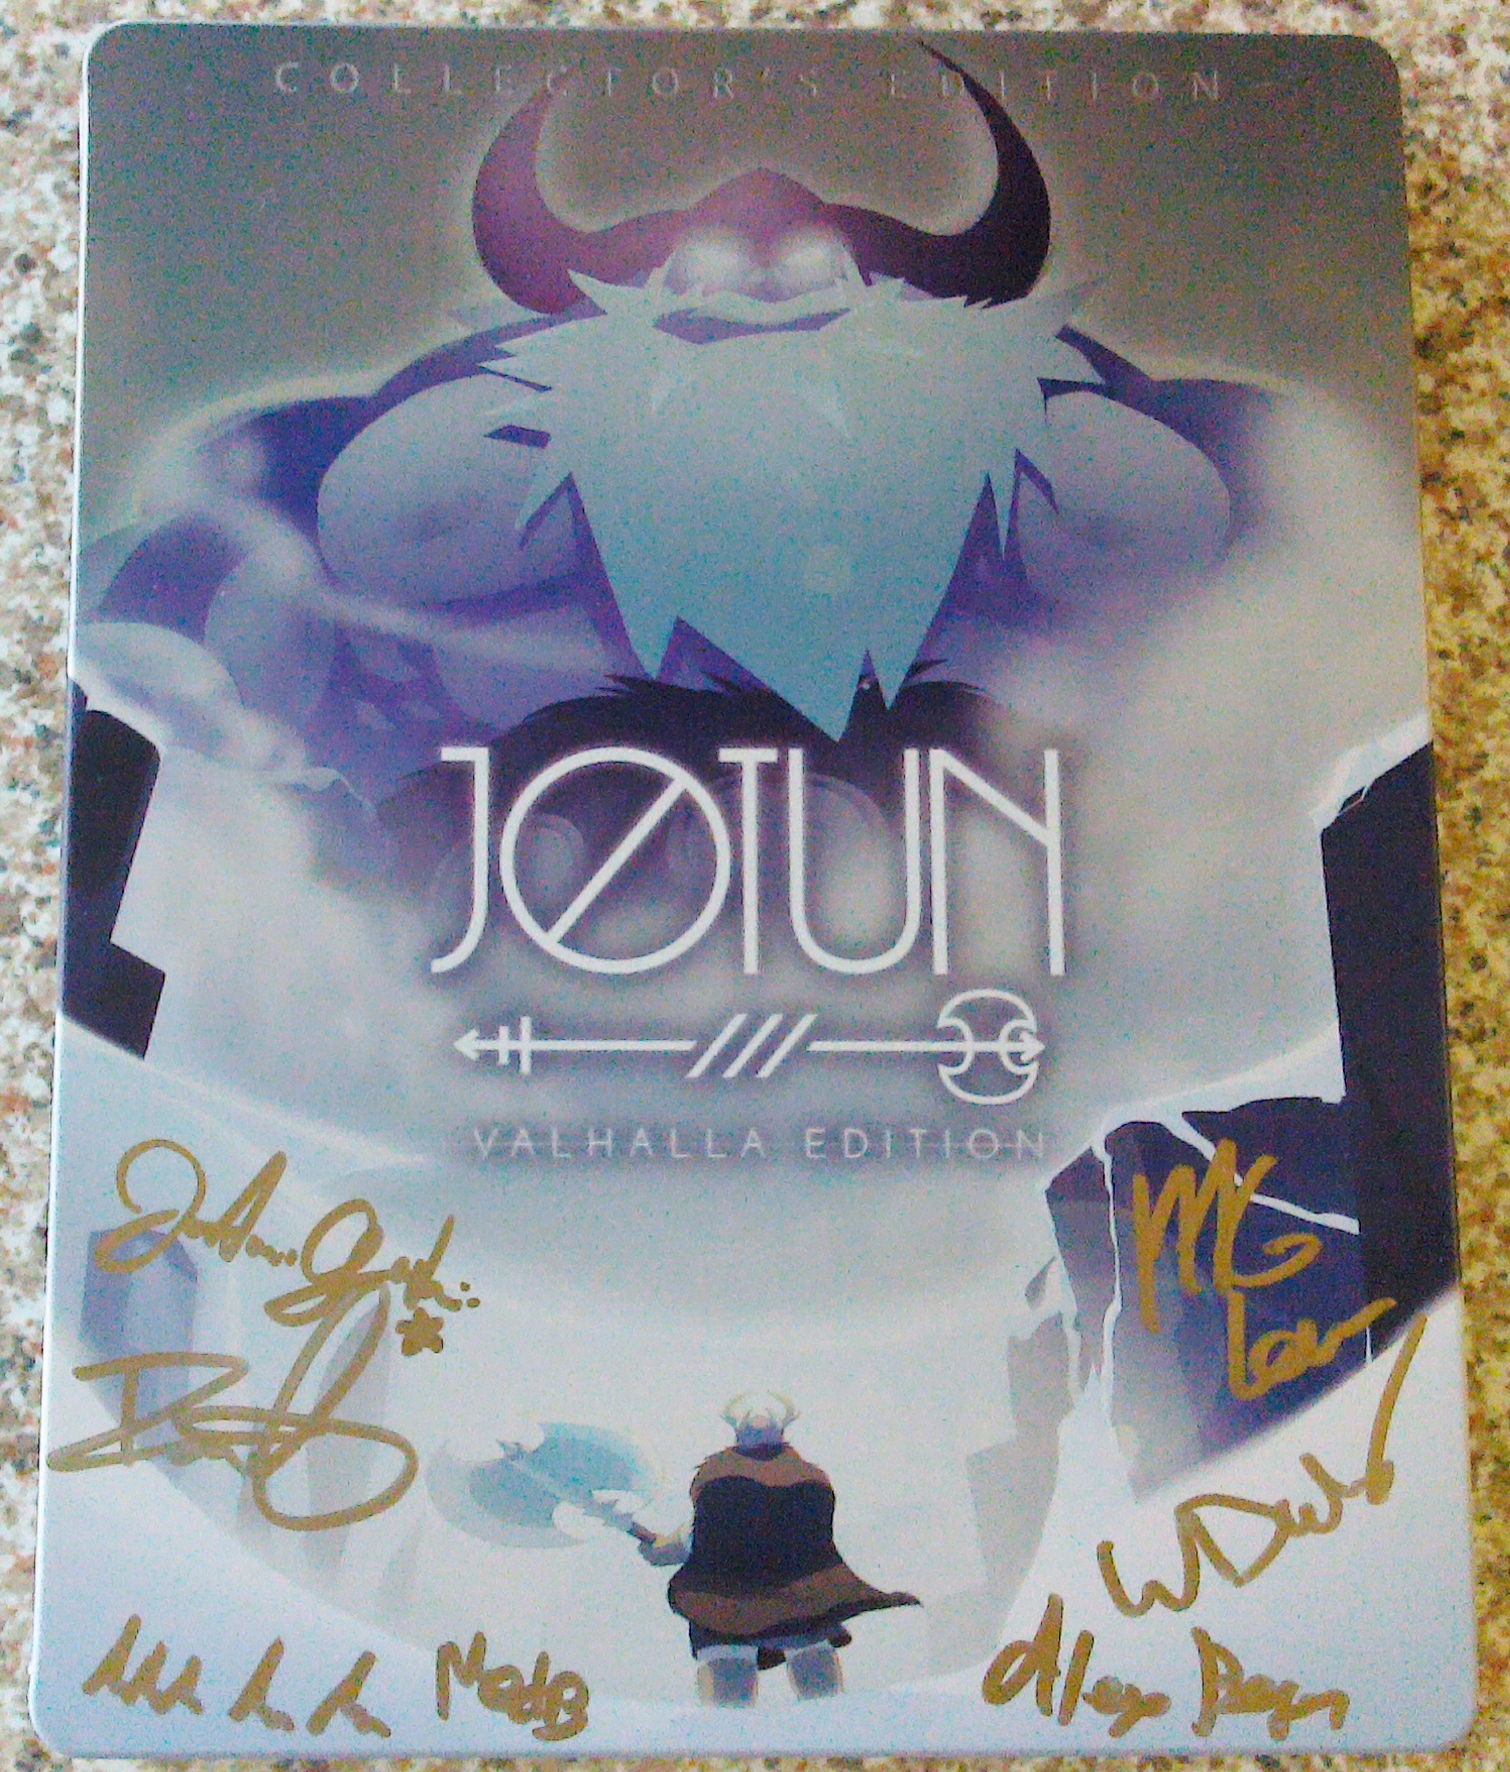 Jotun - Thunder Lotus Games